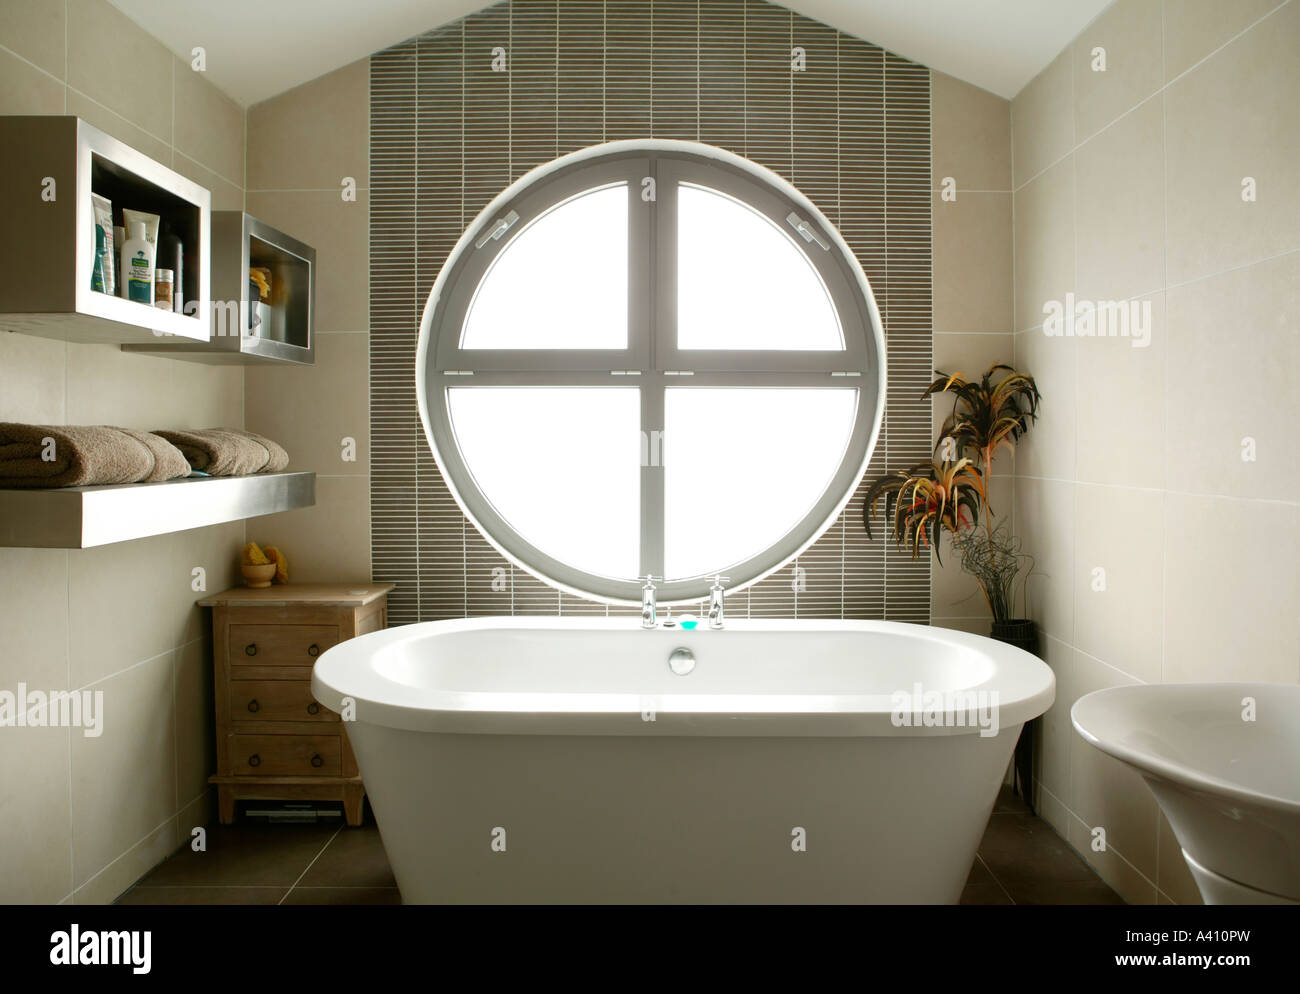 Wie Fliest Man Ein Modernes Bad Kreisfenster Stockfotos Kreisfenster Bilder Alamy